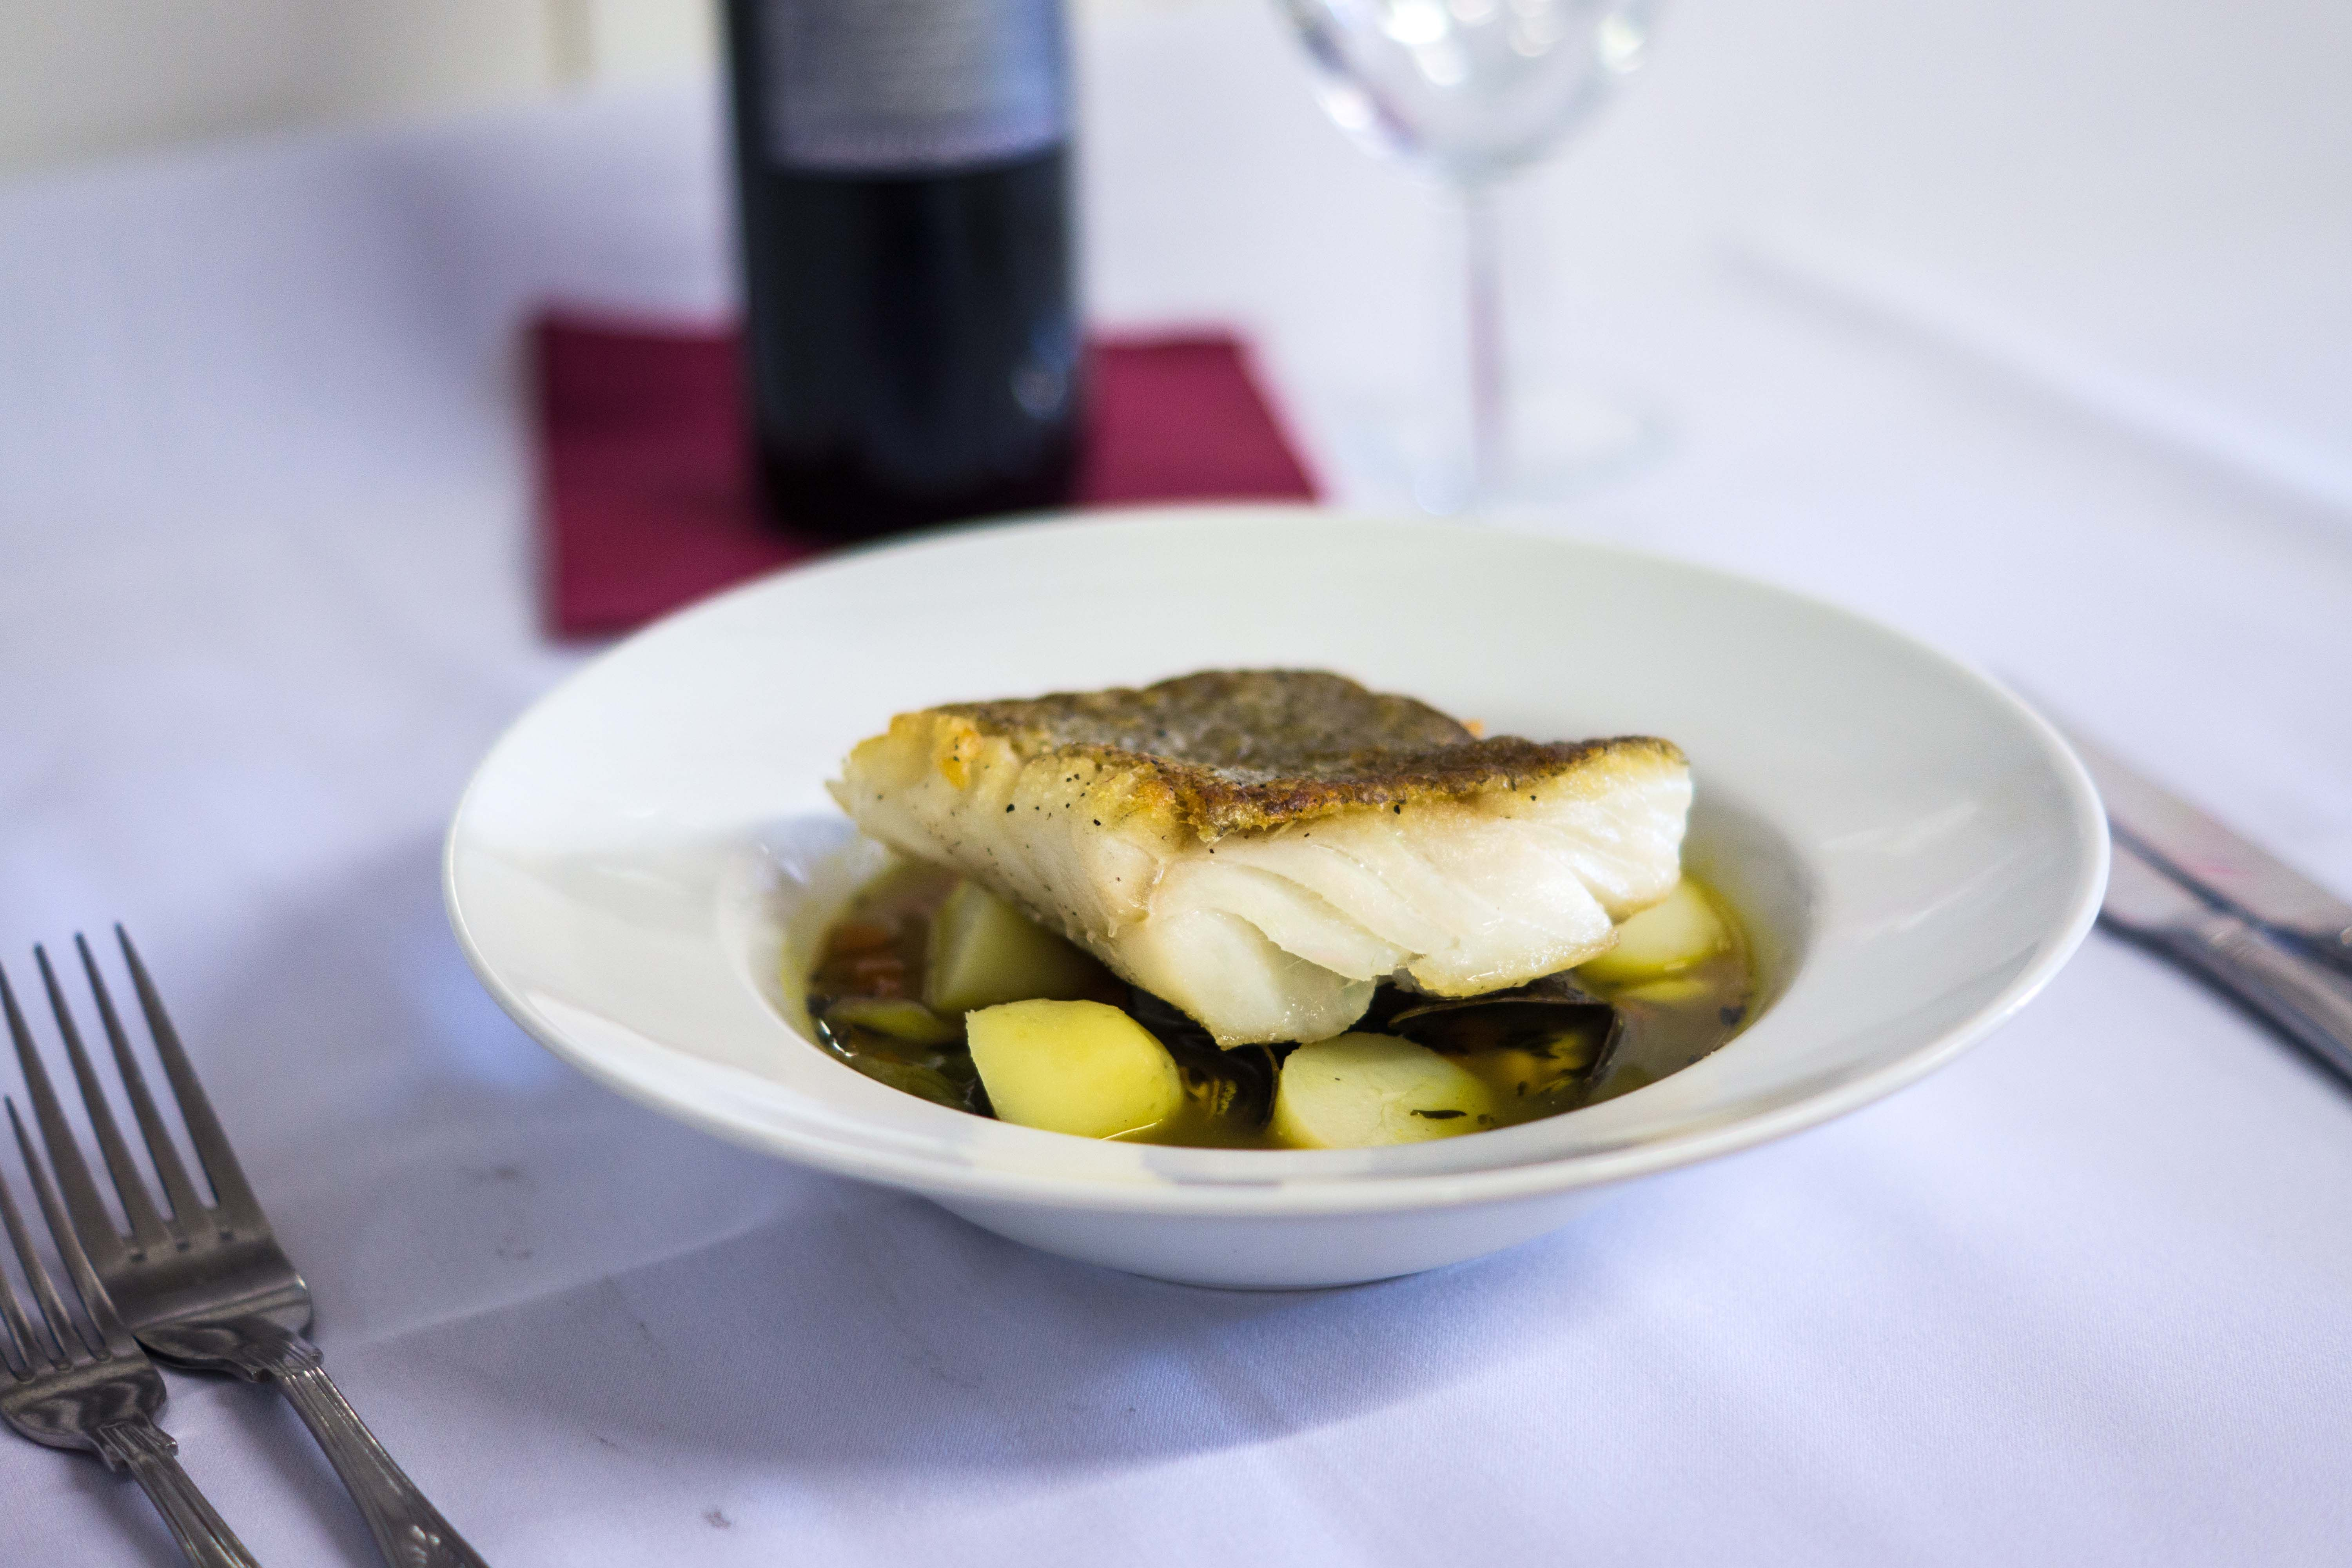 Pan fried fillet of sea bass with saffron fondant potato, wilted spinach, green beans, chilli and ginger cream reduction